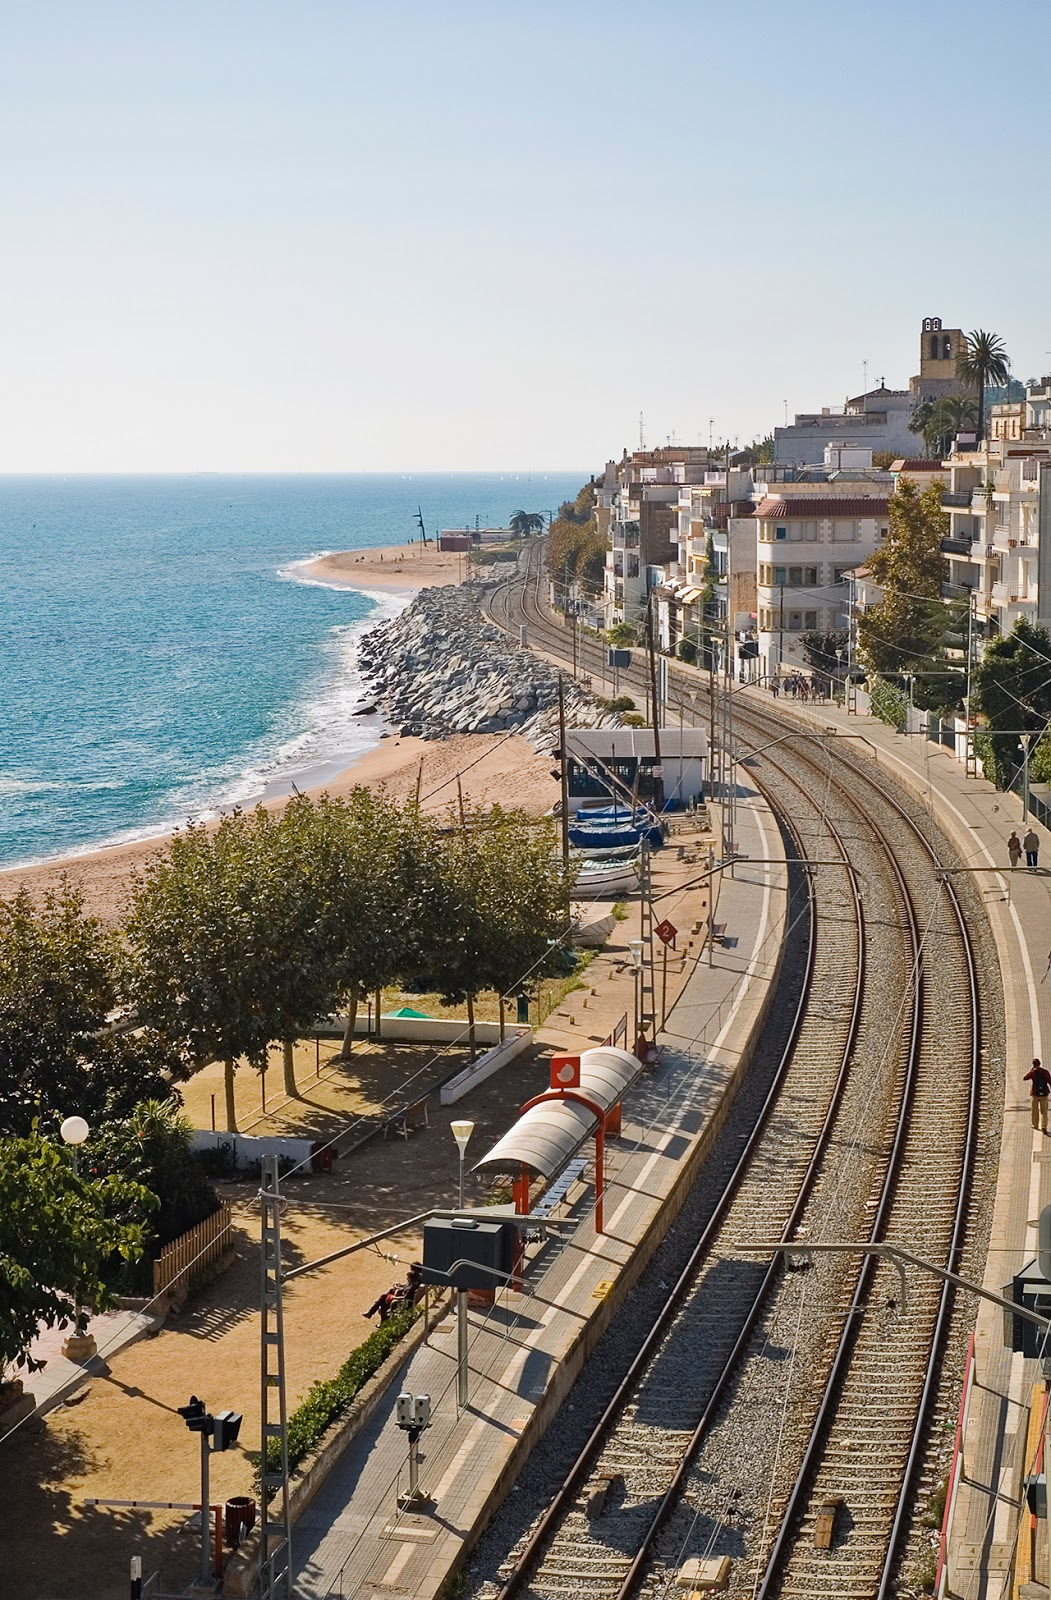 Sant Pol de Mar-View of railroad and the sea, Maresme Coast near Barcelona